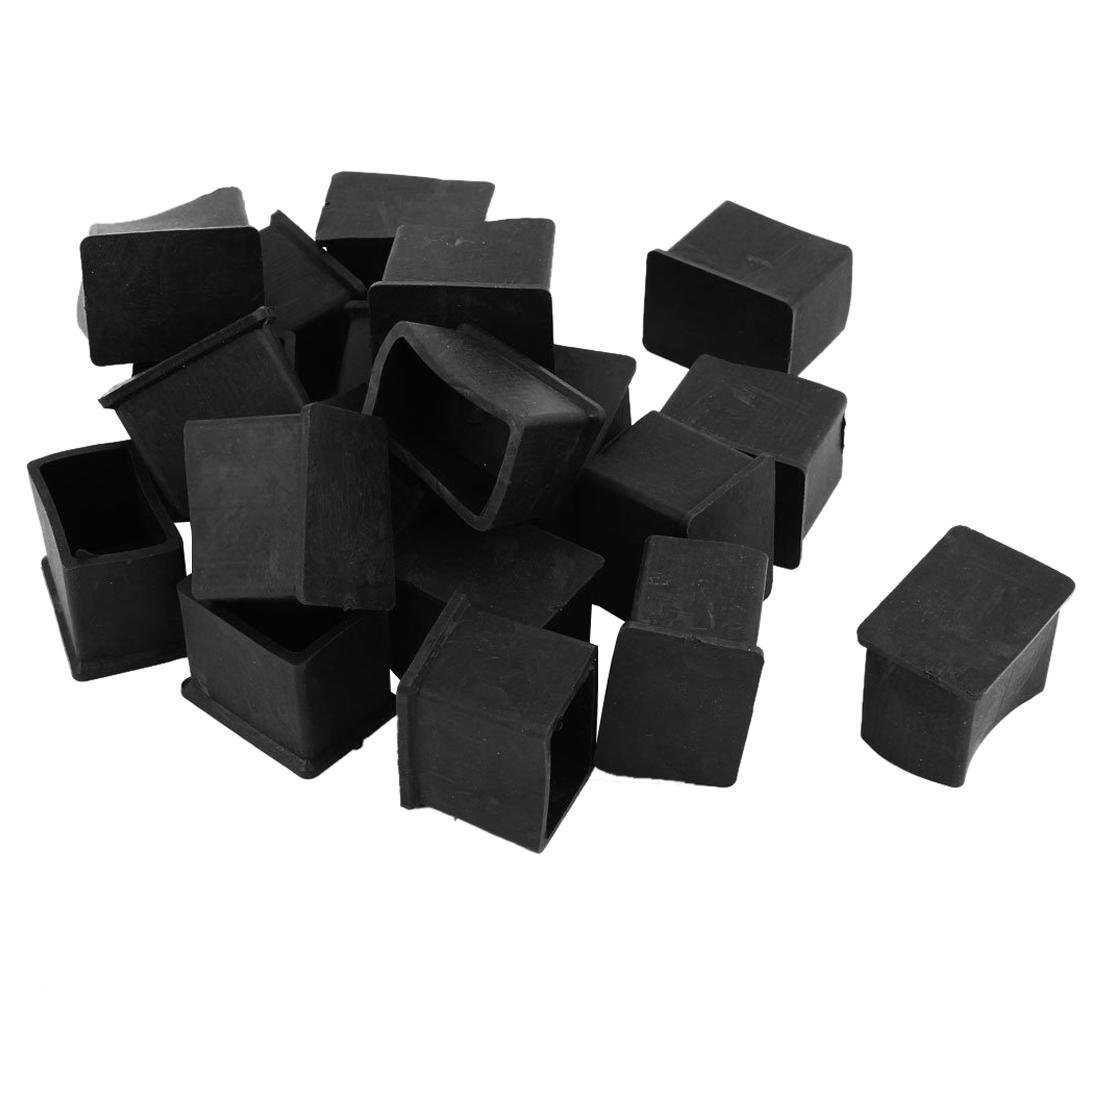 Best Quality Rubber Pvc Covers Chair Leg Protector End Caps 20mmx30mm Black  At Cheap Price, Online Furniture Accessories | Dhgate.Com